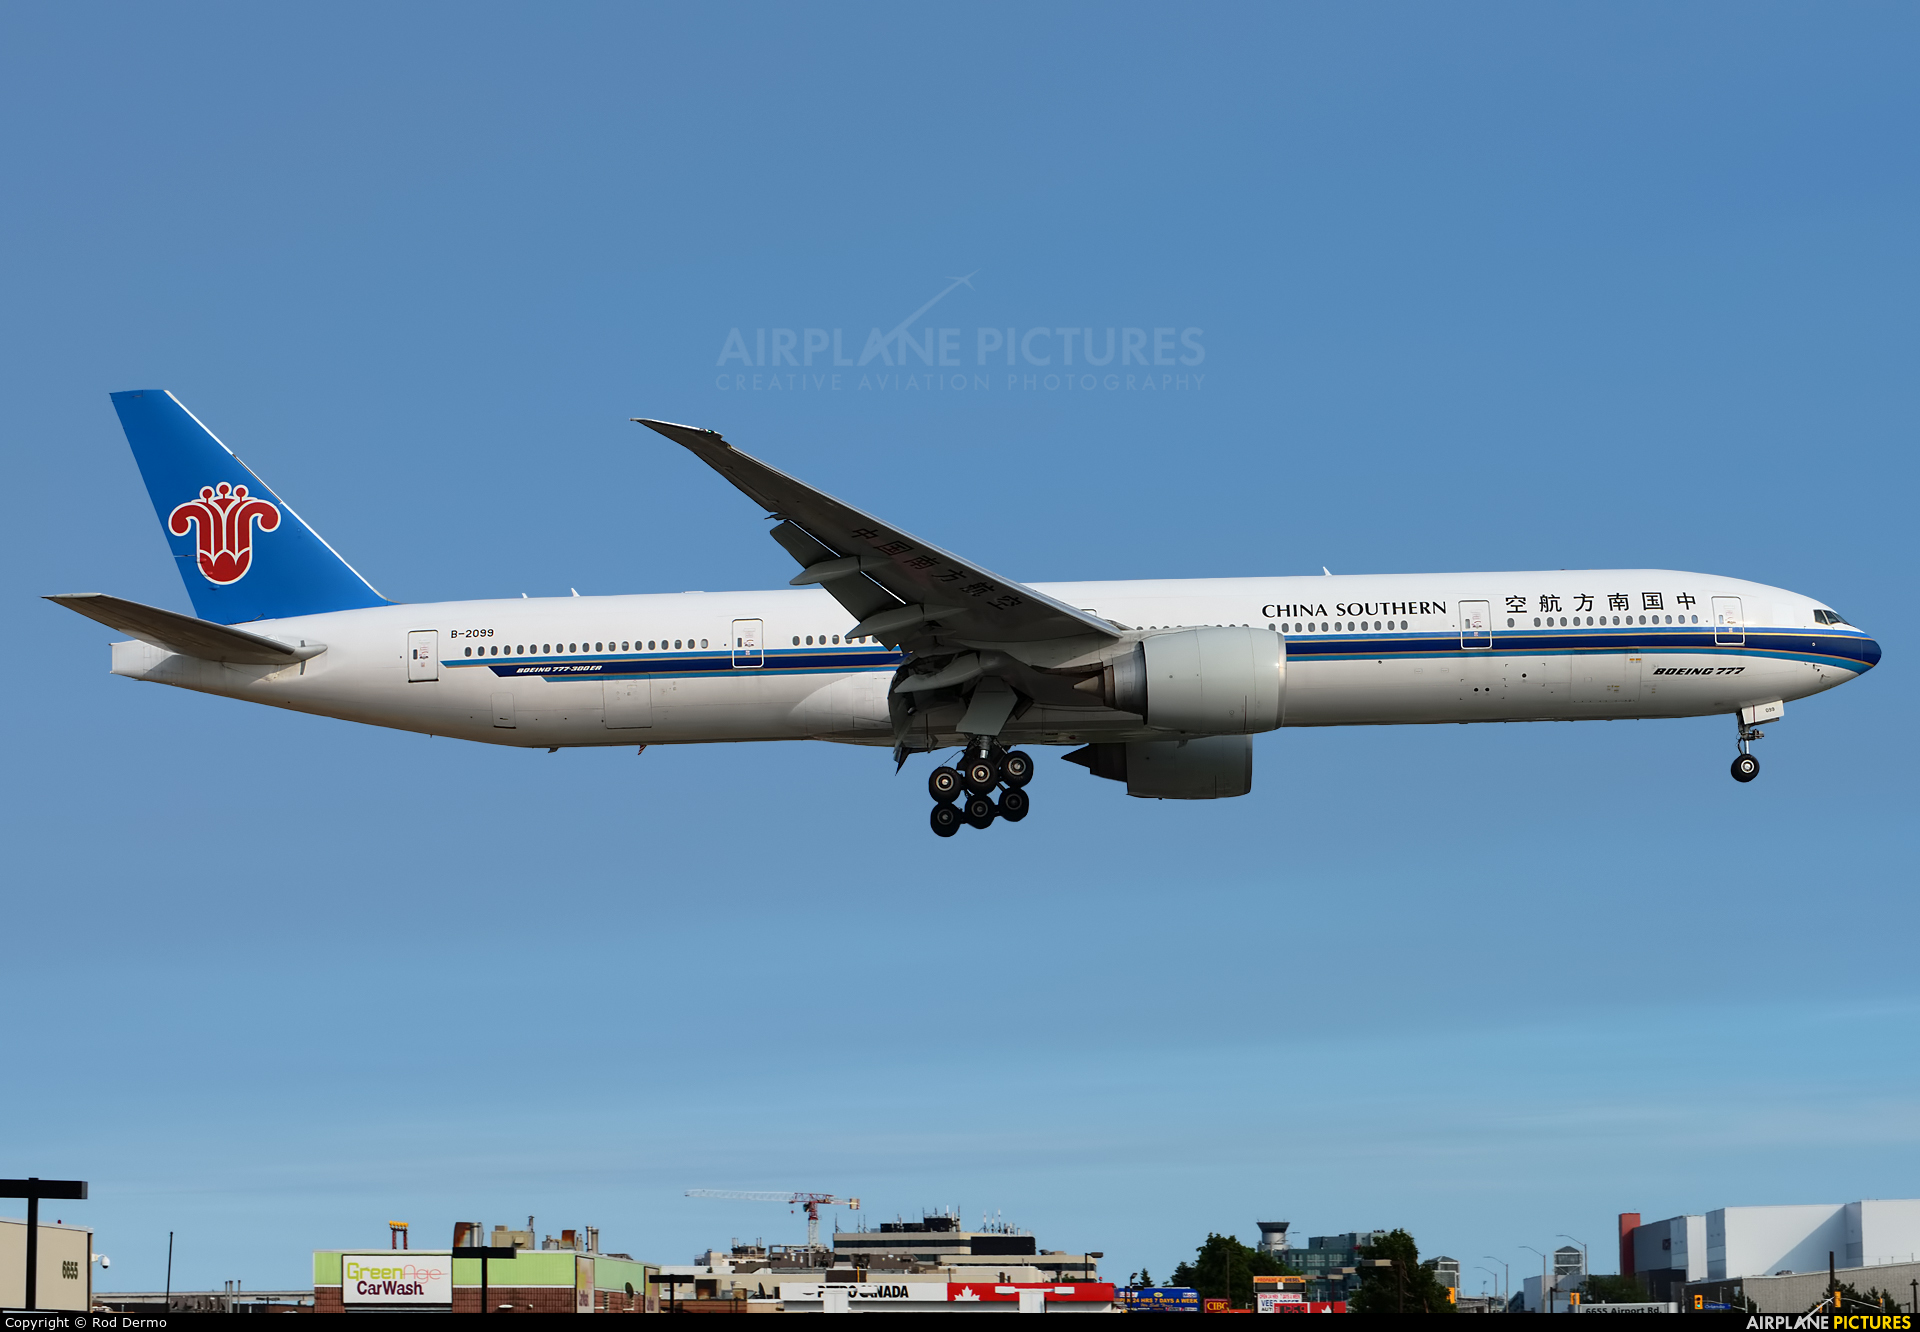 China Southern Airlines B-2099 aircraft at Toronto - Pearson Intl, ON